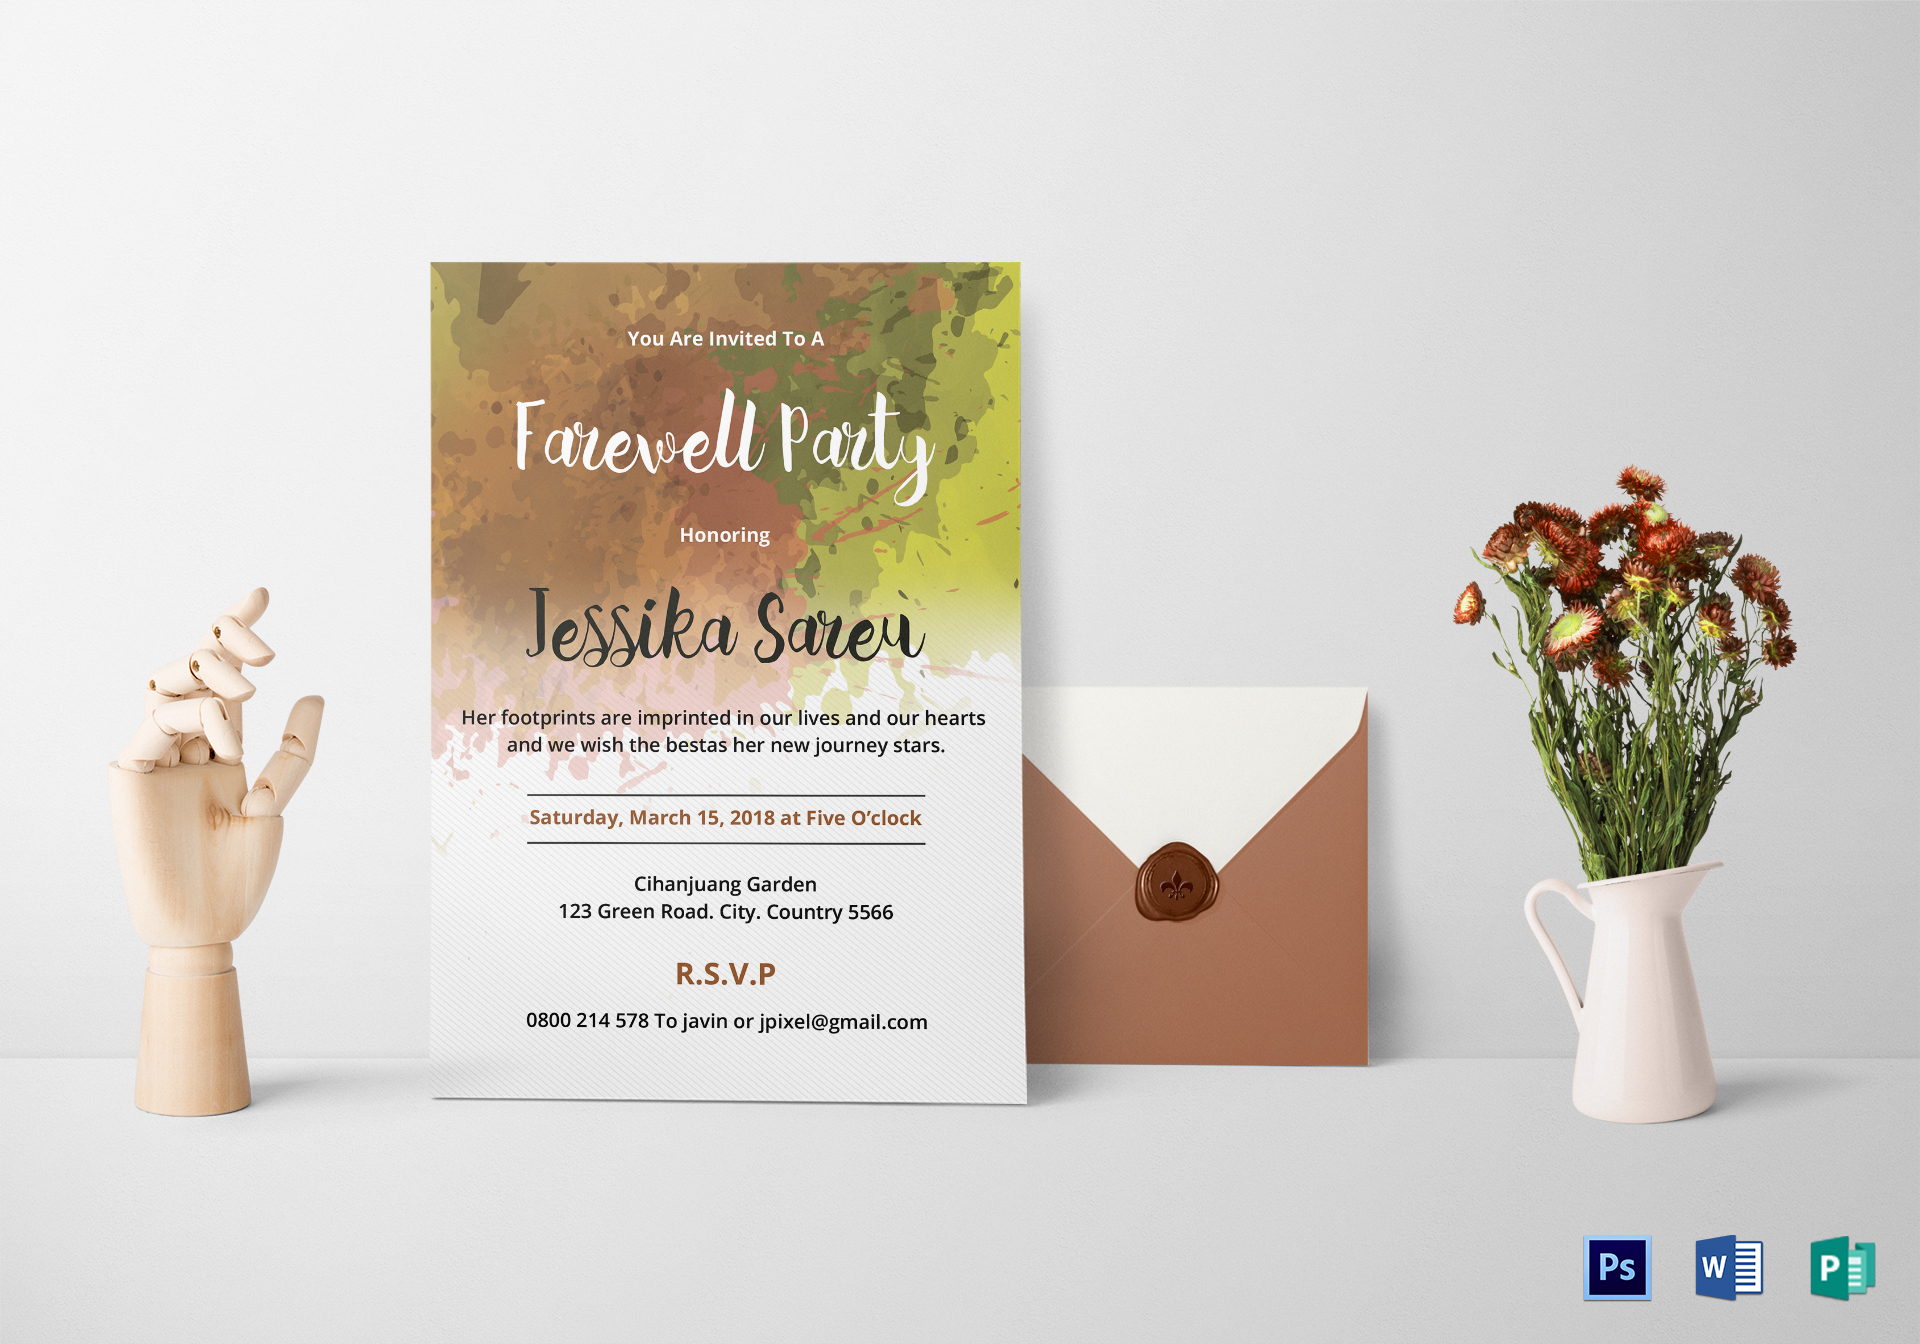 Farewell Party Invitation Design Template in Word, PSD, Publisher